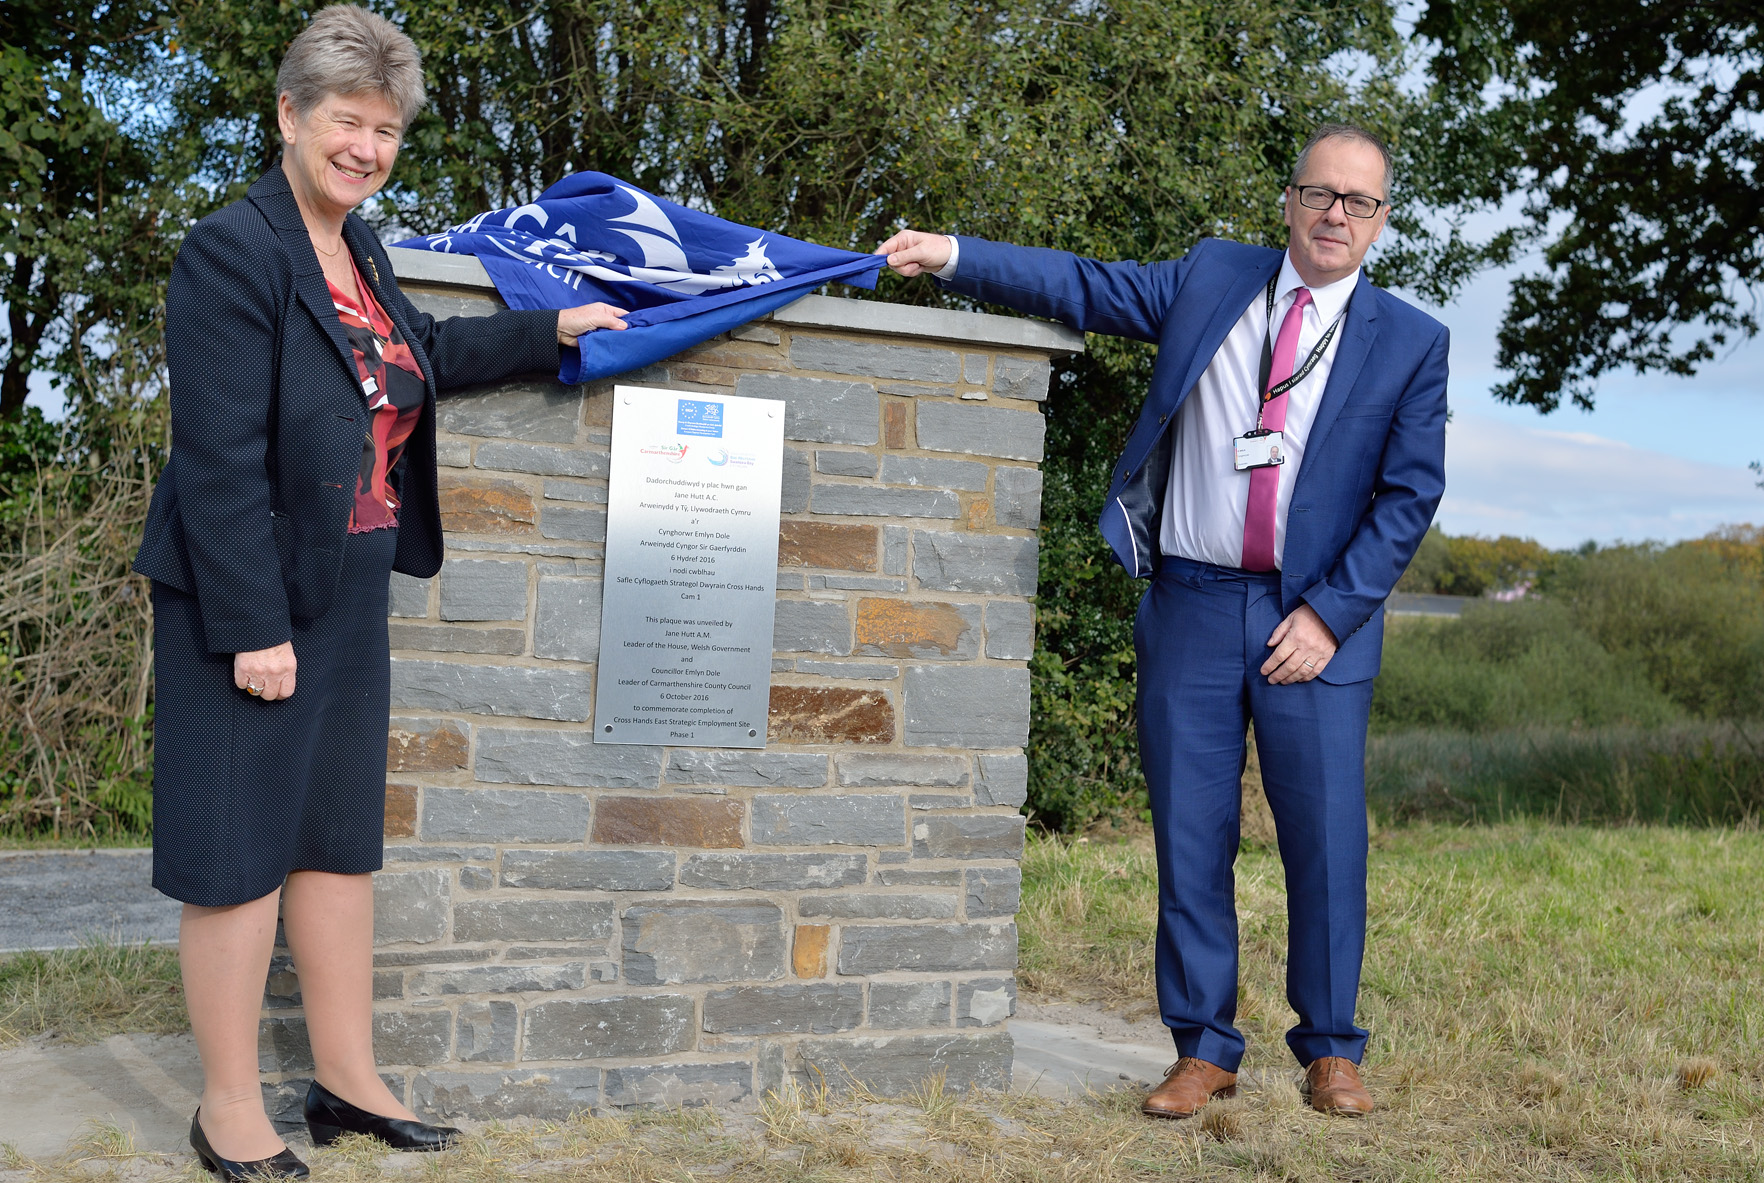 Welsh Government Leader of the House Jane Hutt AM and Carmarthenshire County Council Leader Cllr Emlyn Dole at the unveiling of the new development site at Cross Hands East.